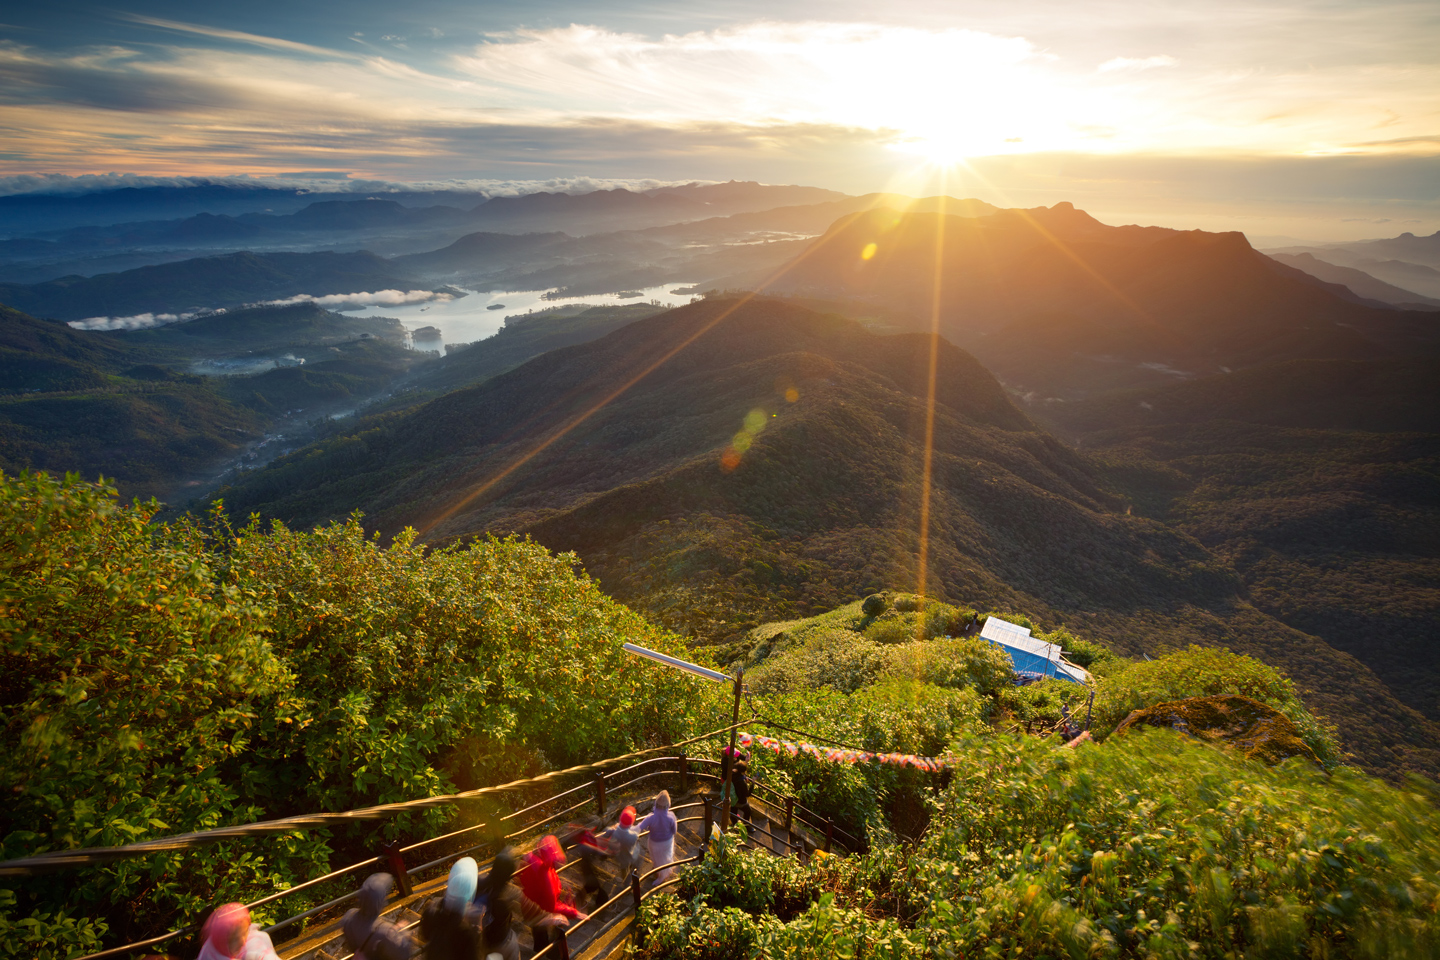 View from Adam's peak, Sri Lanka